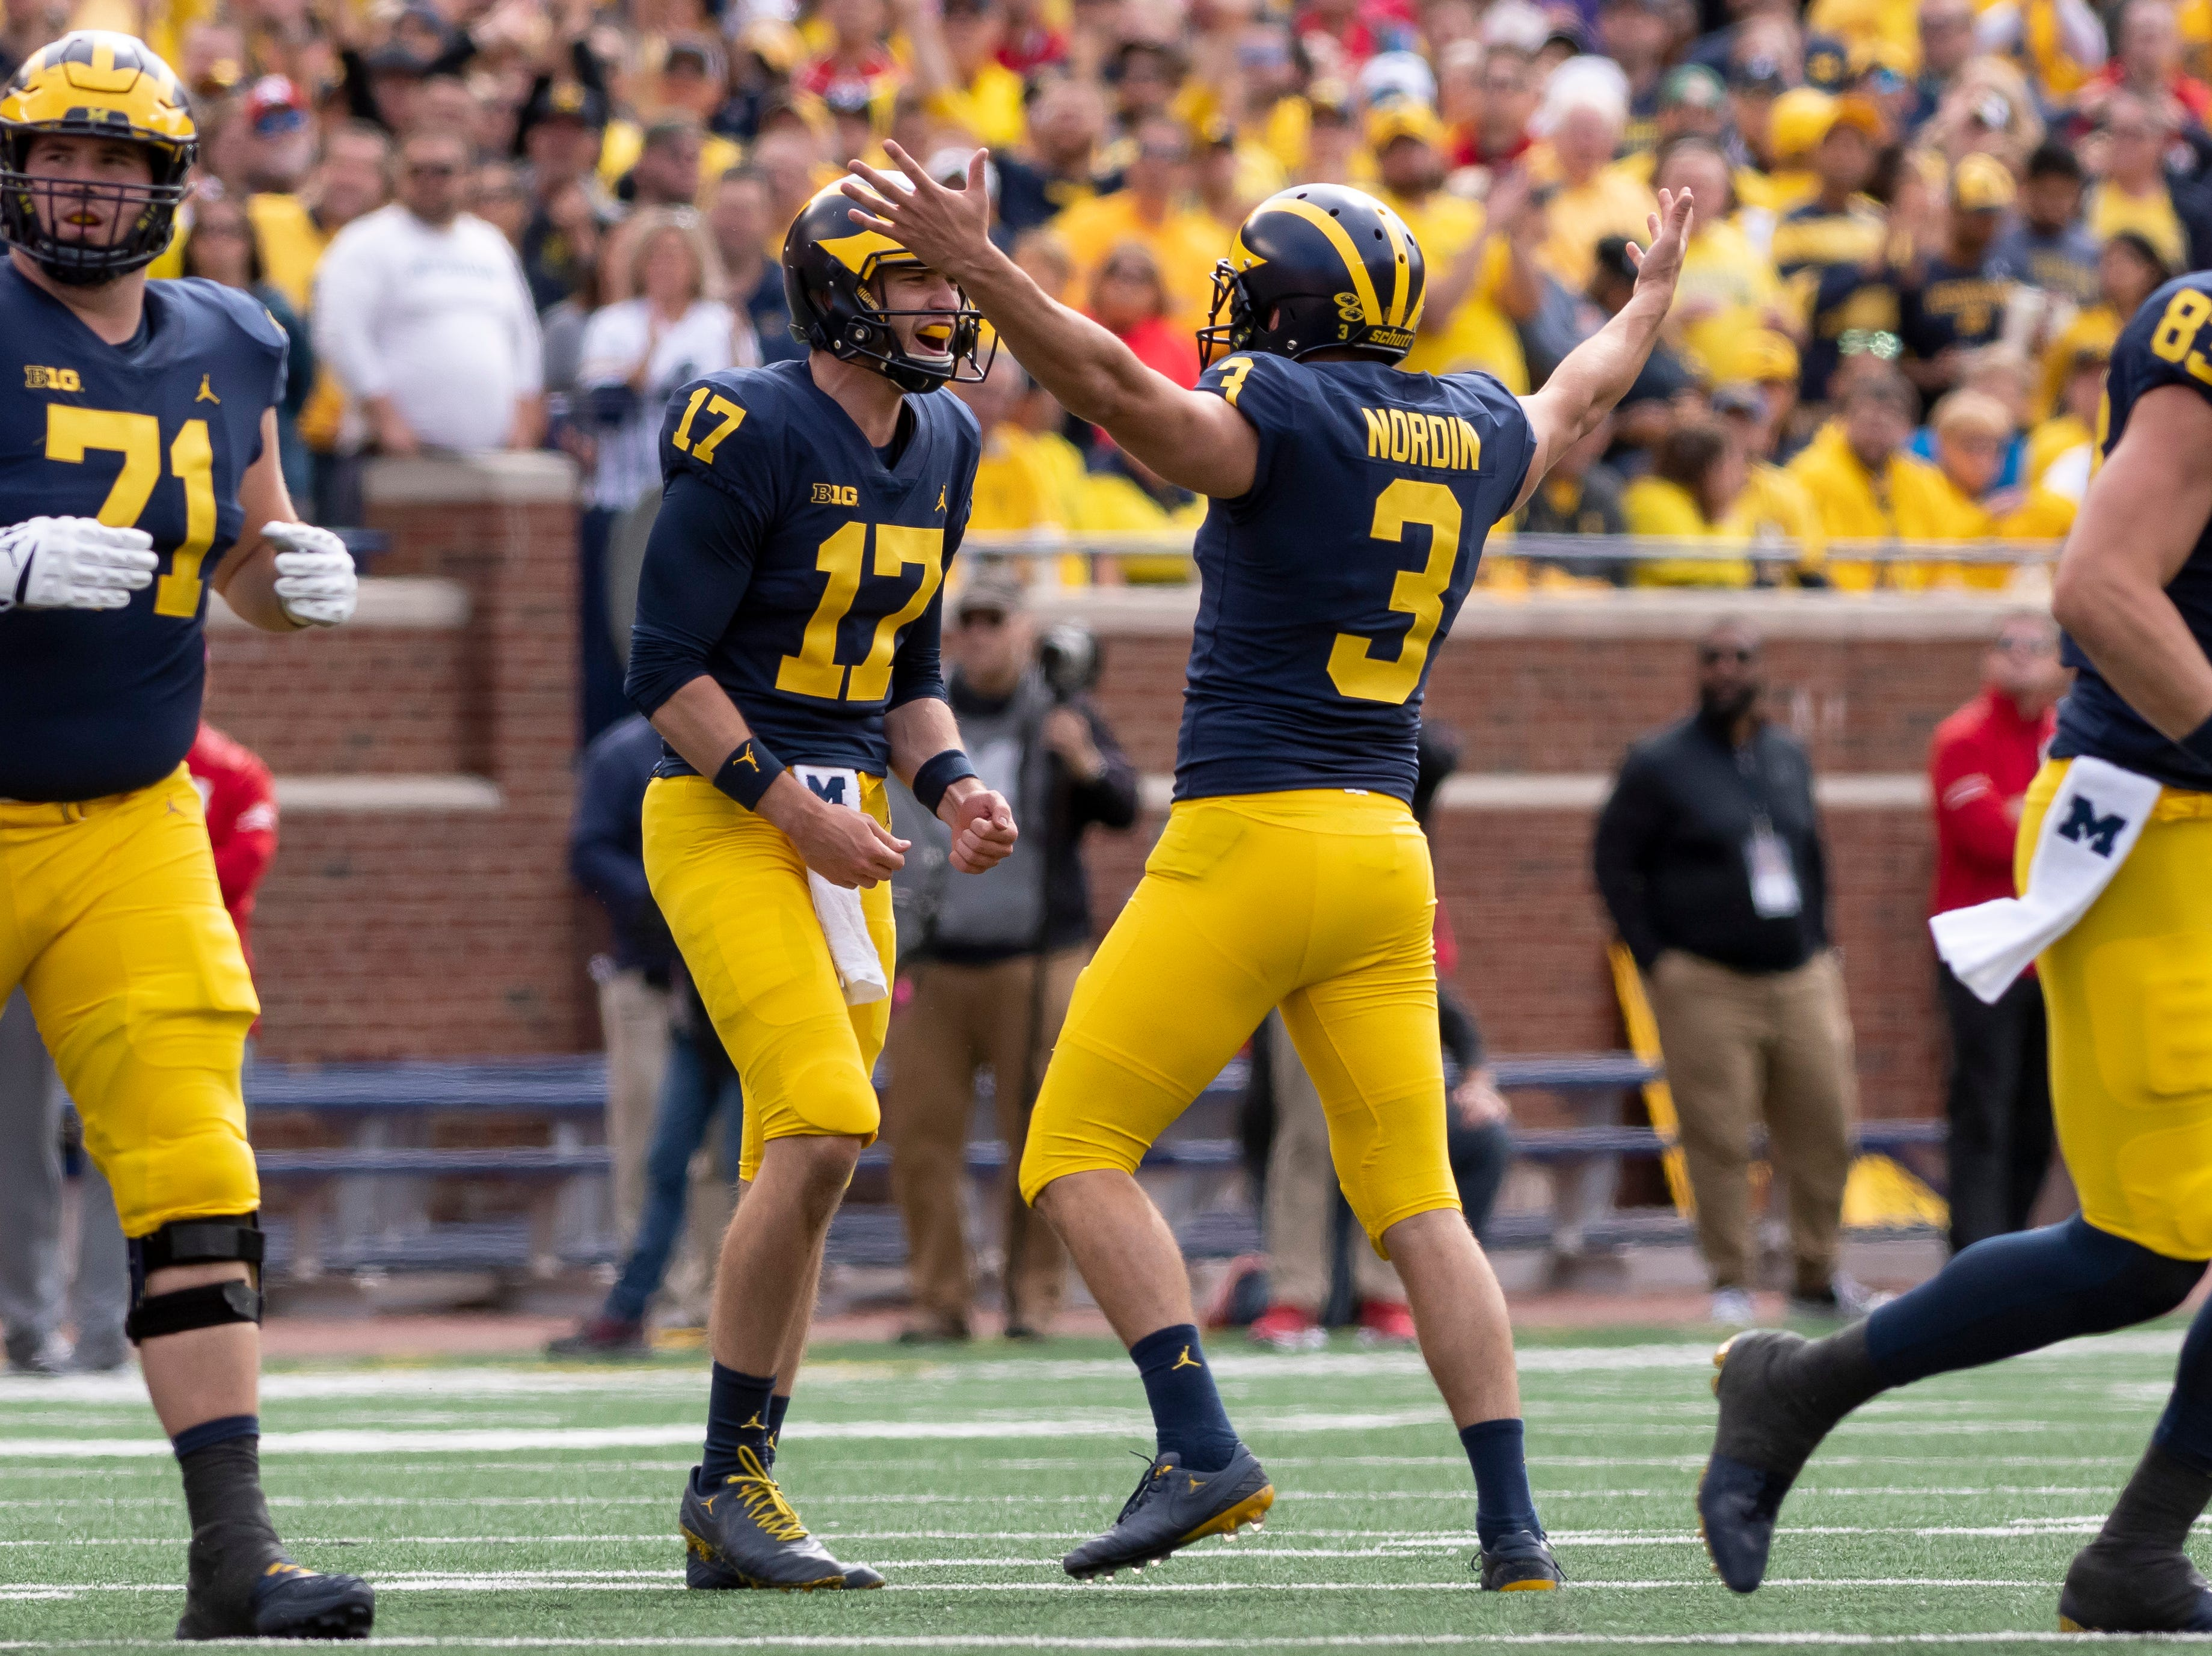 Michigan place kicker Quinn Nordin, right, celebrates with punter Will Hart after completing a 55 yard field goal in the second quarter.